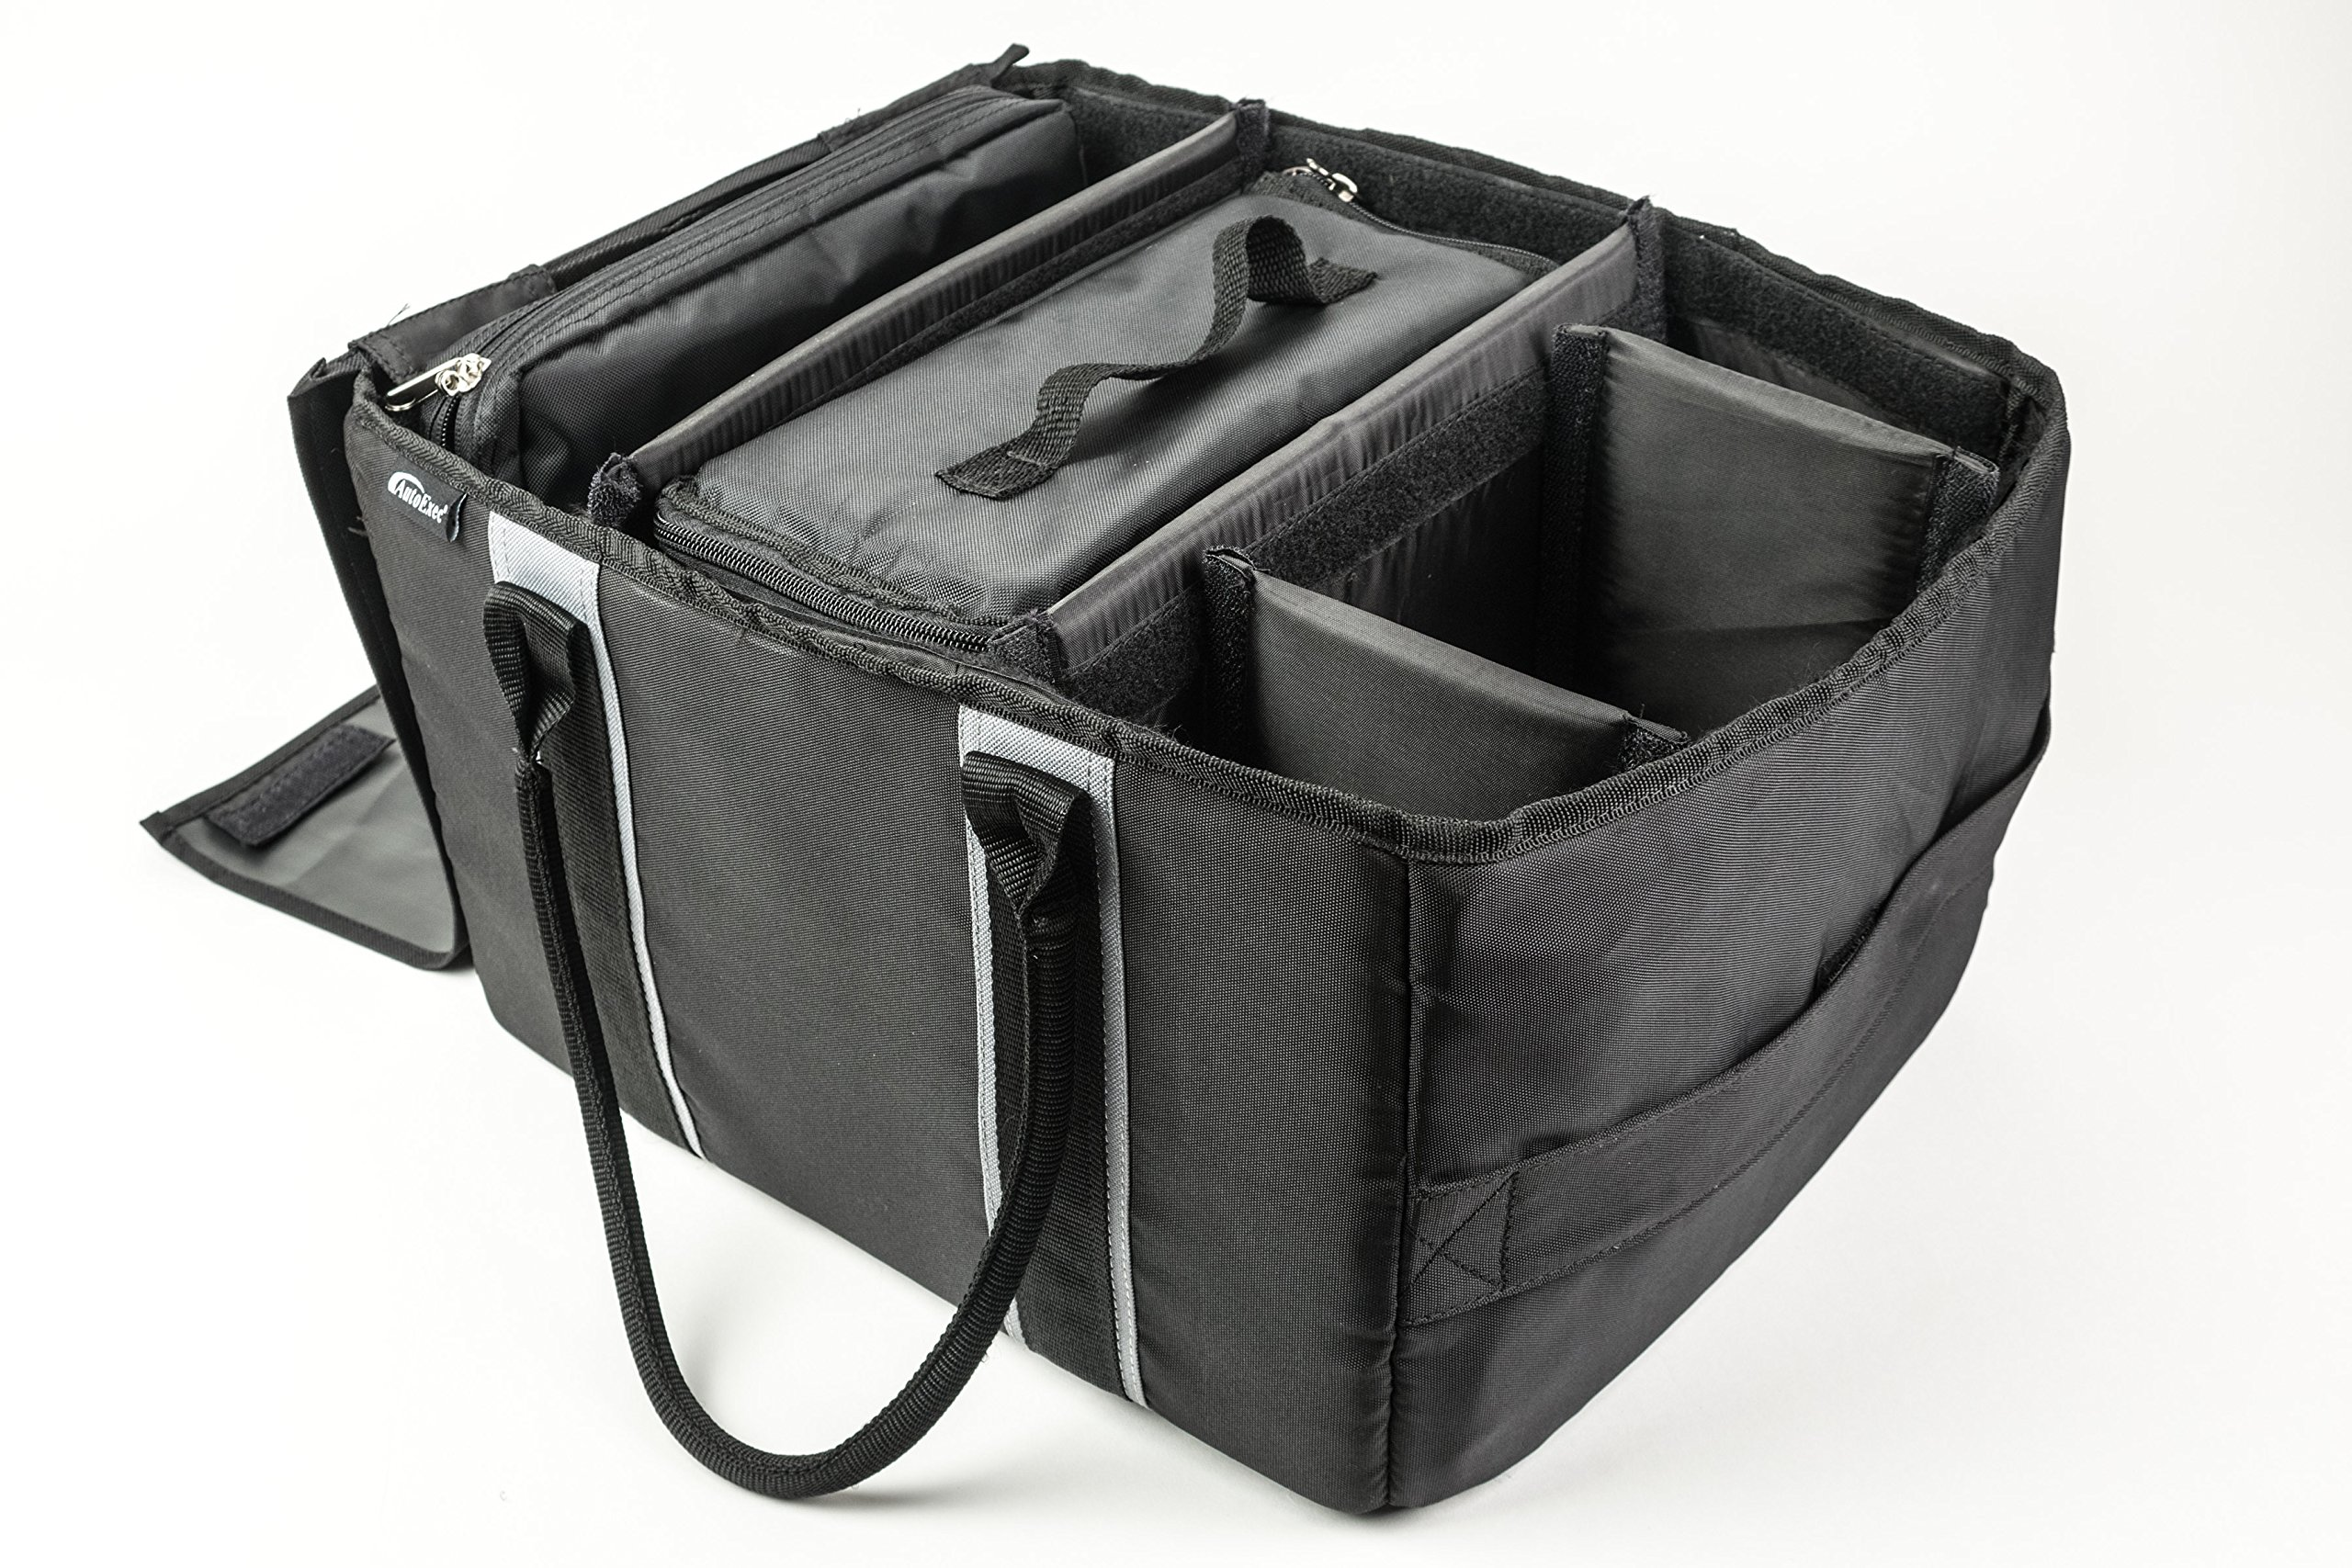 AutoExec AETote-09 Black/Grey File Tote with One Cooler and One Tablet Case by AutoExec (Image #4)